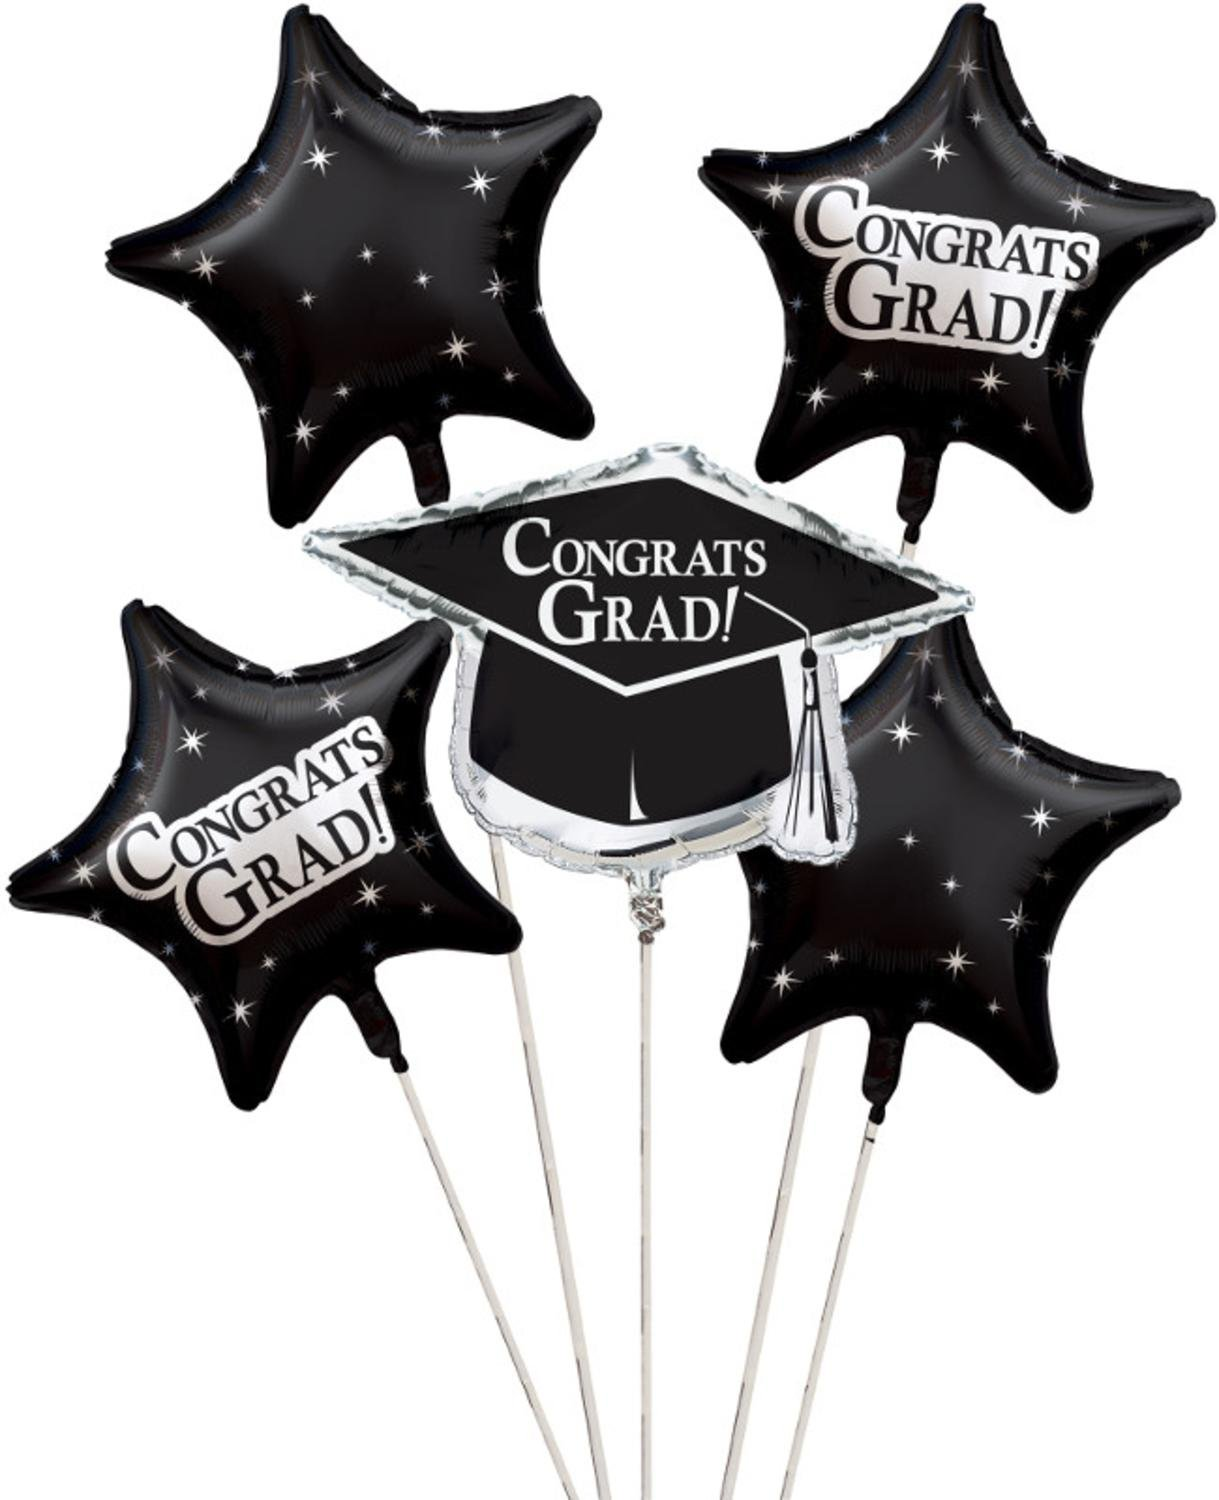 Club Pack of 12 Black Metallic Foil ''Congrats Grad'' Graduation Day Party Balloon Clusters